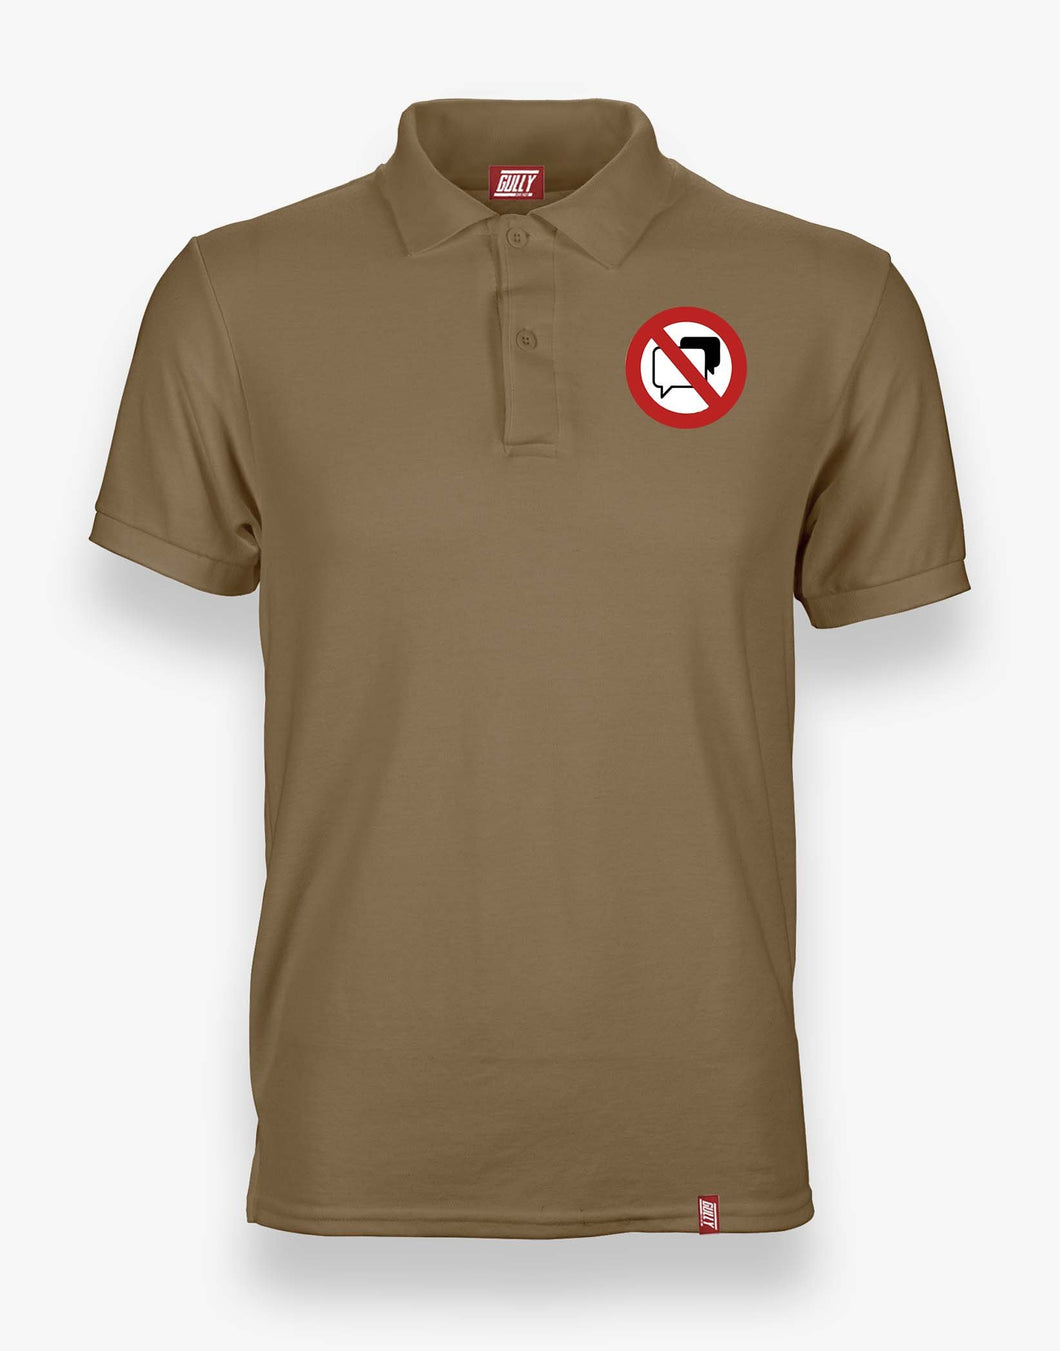 No Speaking Polo (Sand)